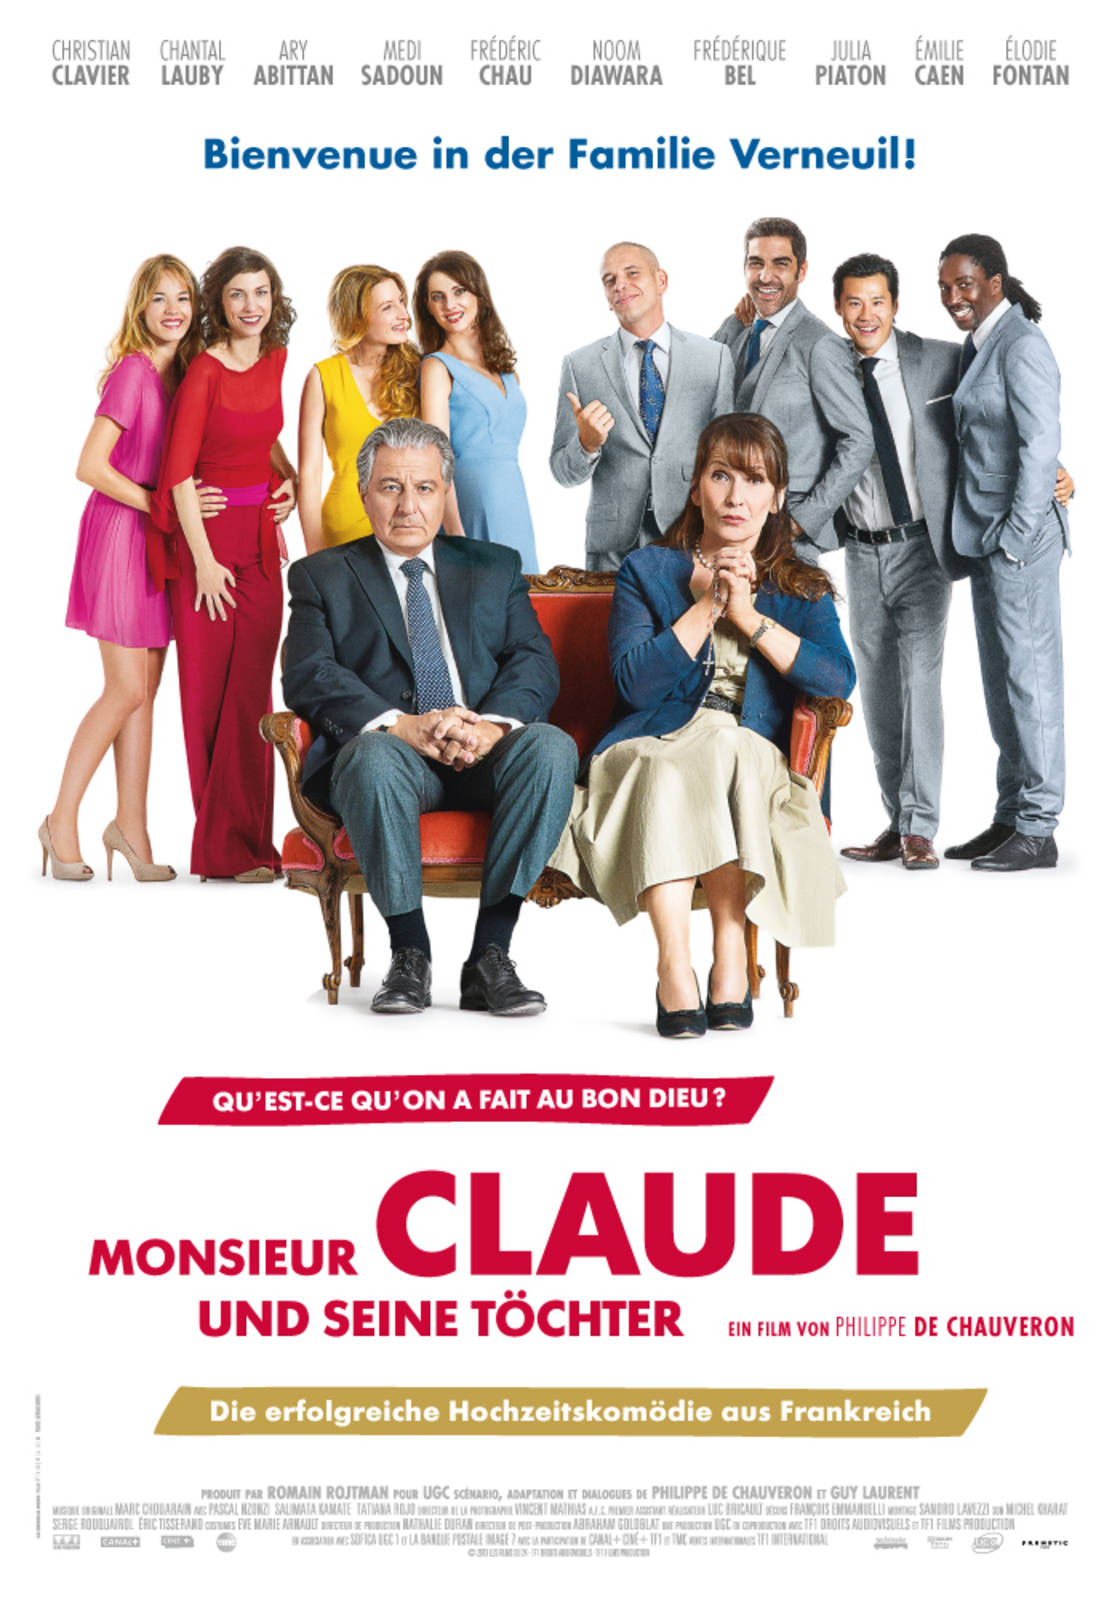 monsieur claude 2 streamcloud